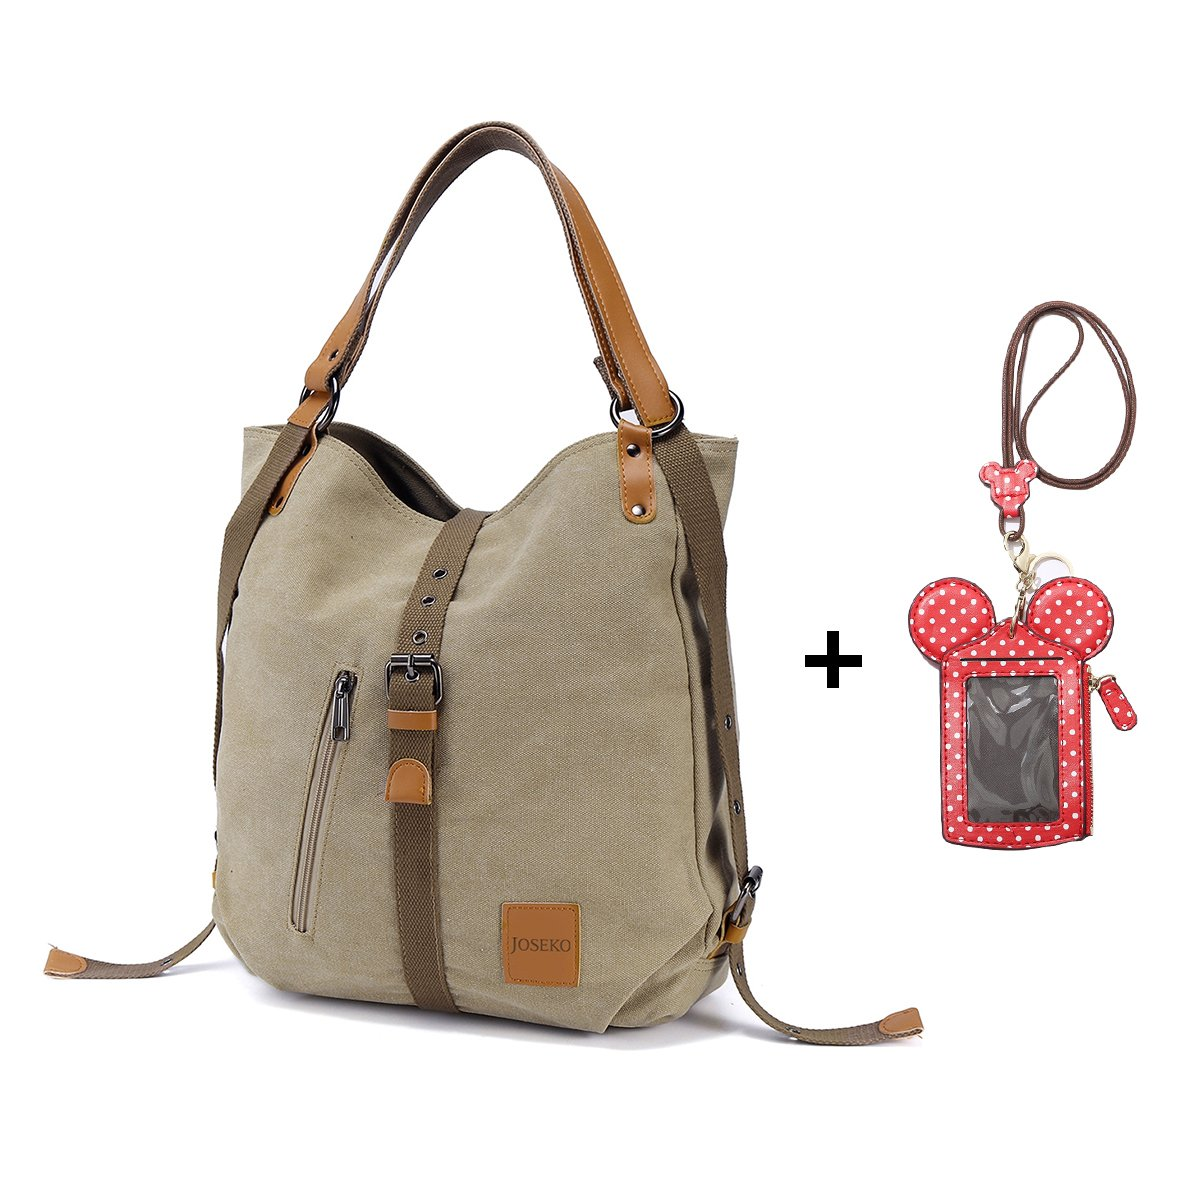 JOSEKO Multifunctional Canvas Bag and Cute Animal Shape Neck Bag Card Holder Wallet Women Convertible Backpack Purse